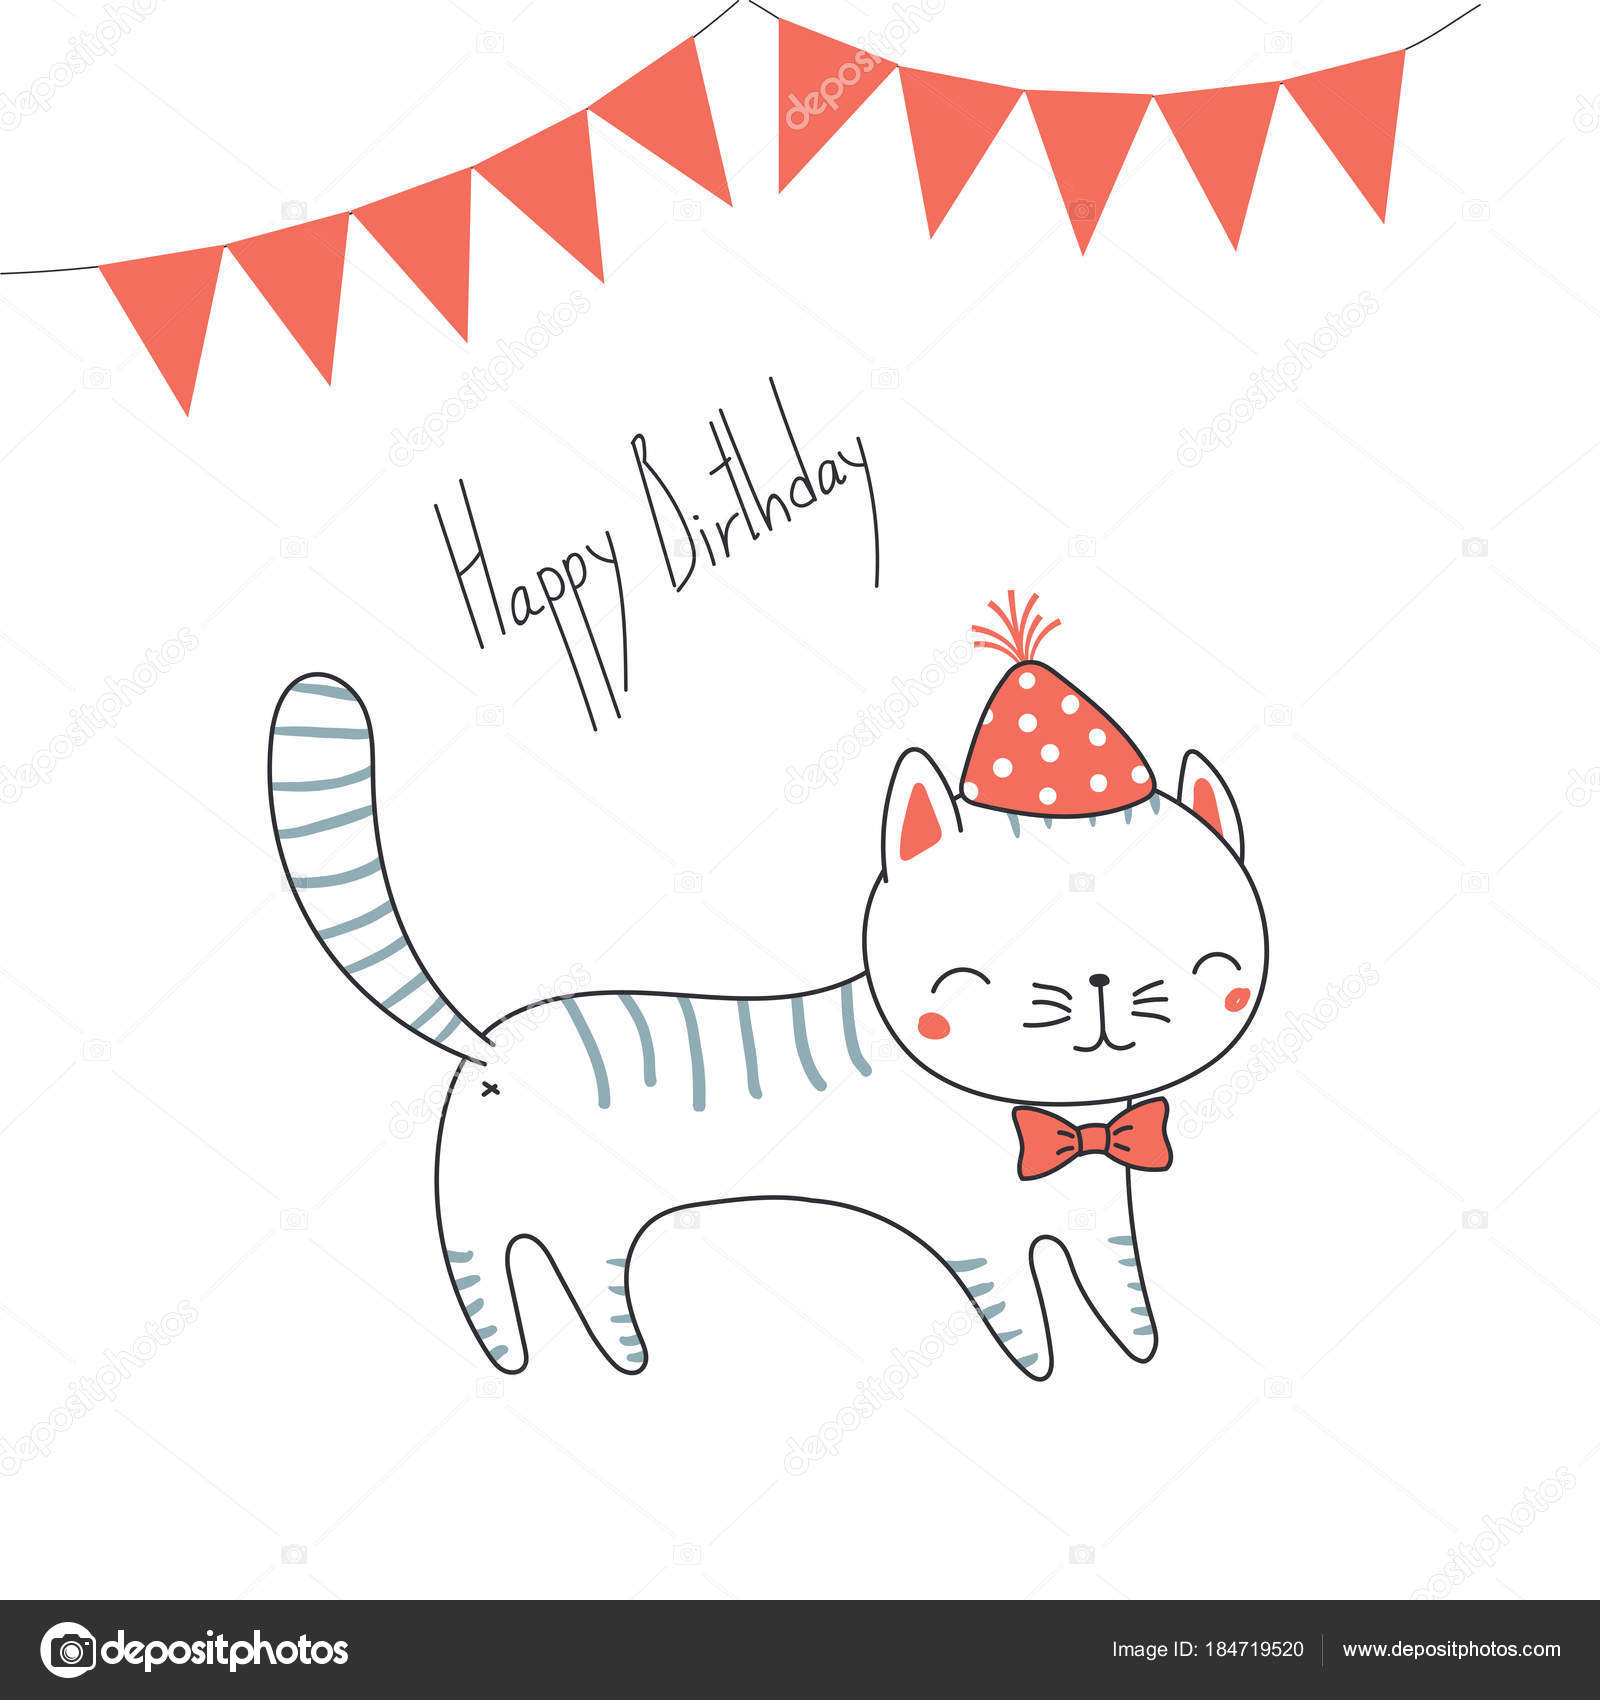 Hand drawn happy birthday greeting card cute funny cartoon cat hand drawn happy birthday greeting card cute funny cartoon cat stock vector kristyandbryce Image collections